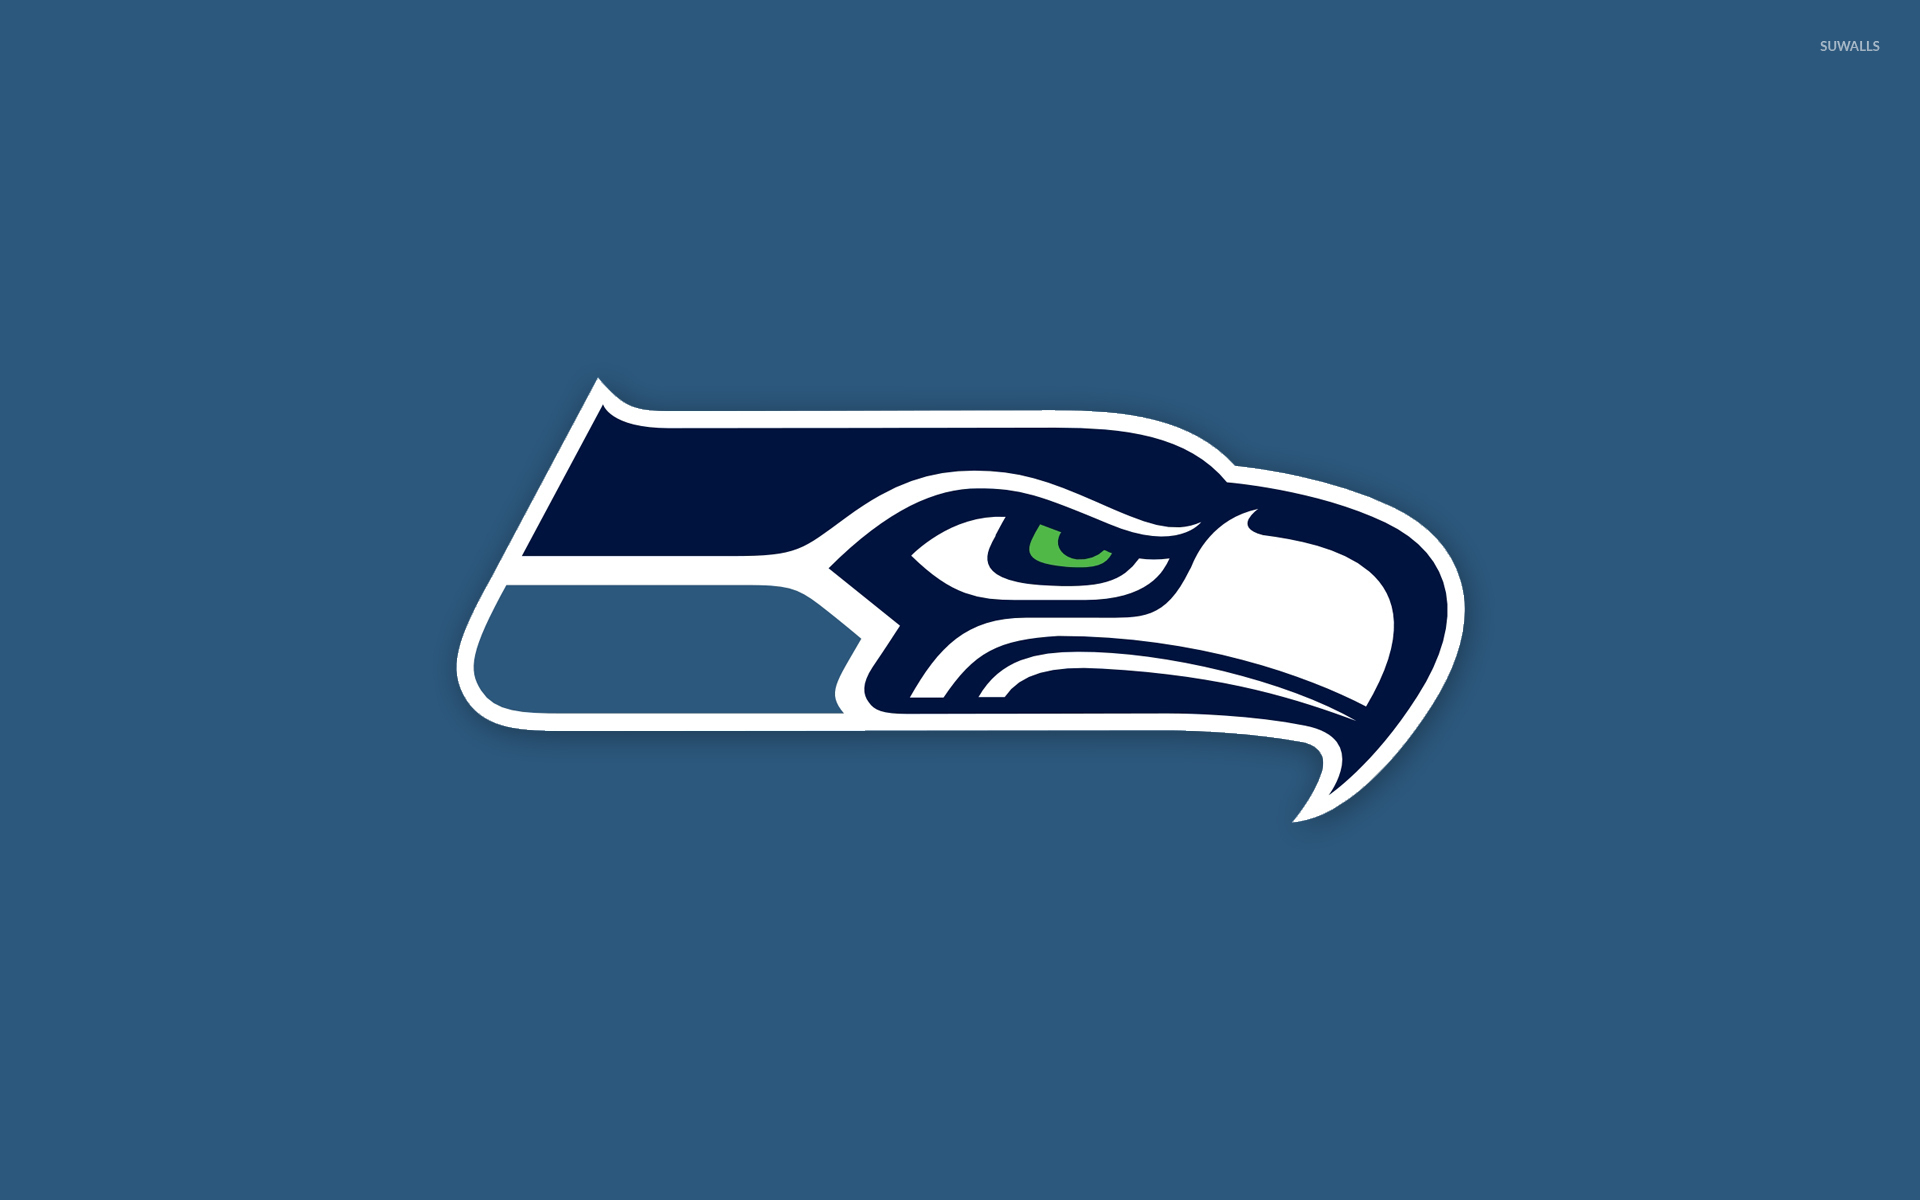 Seattle seahawks on blue background wallpaper sport wallpapers seattle seahawks on blue background wallpaper voltagebd Image collections